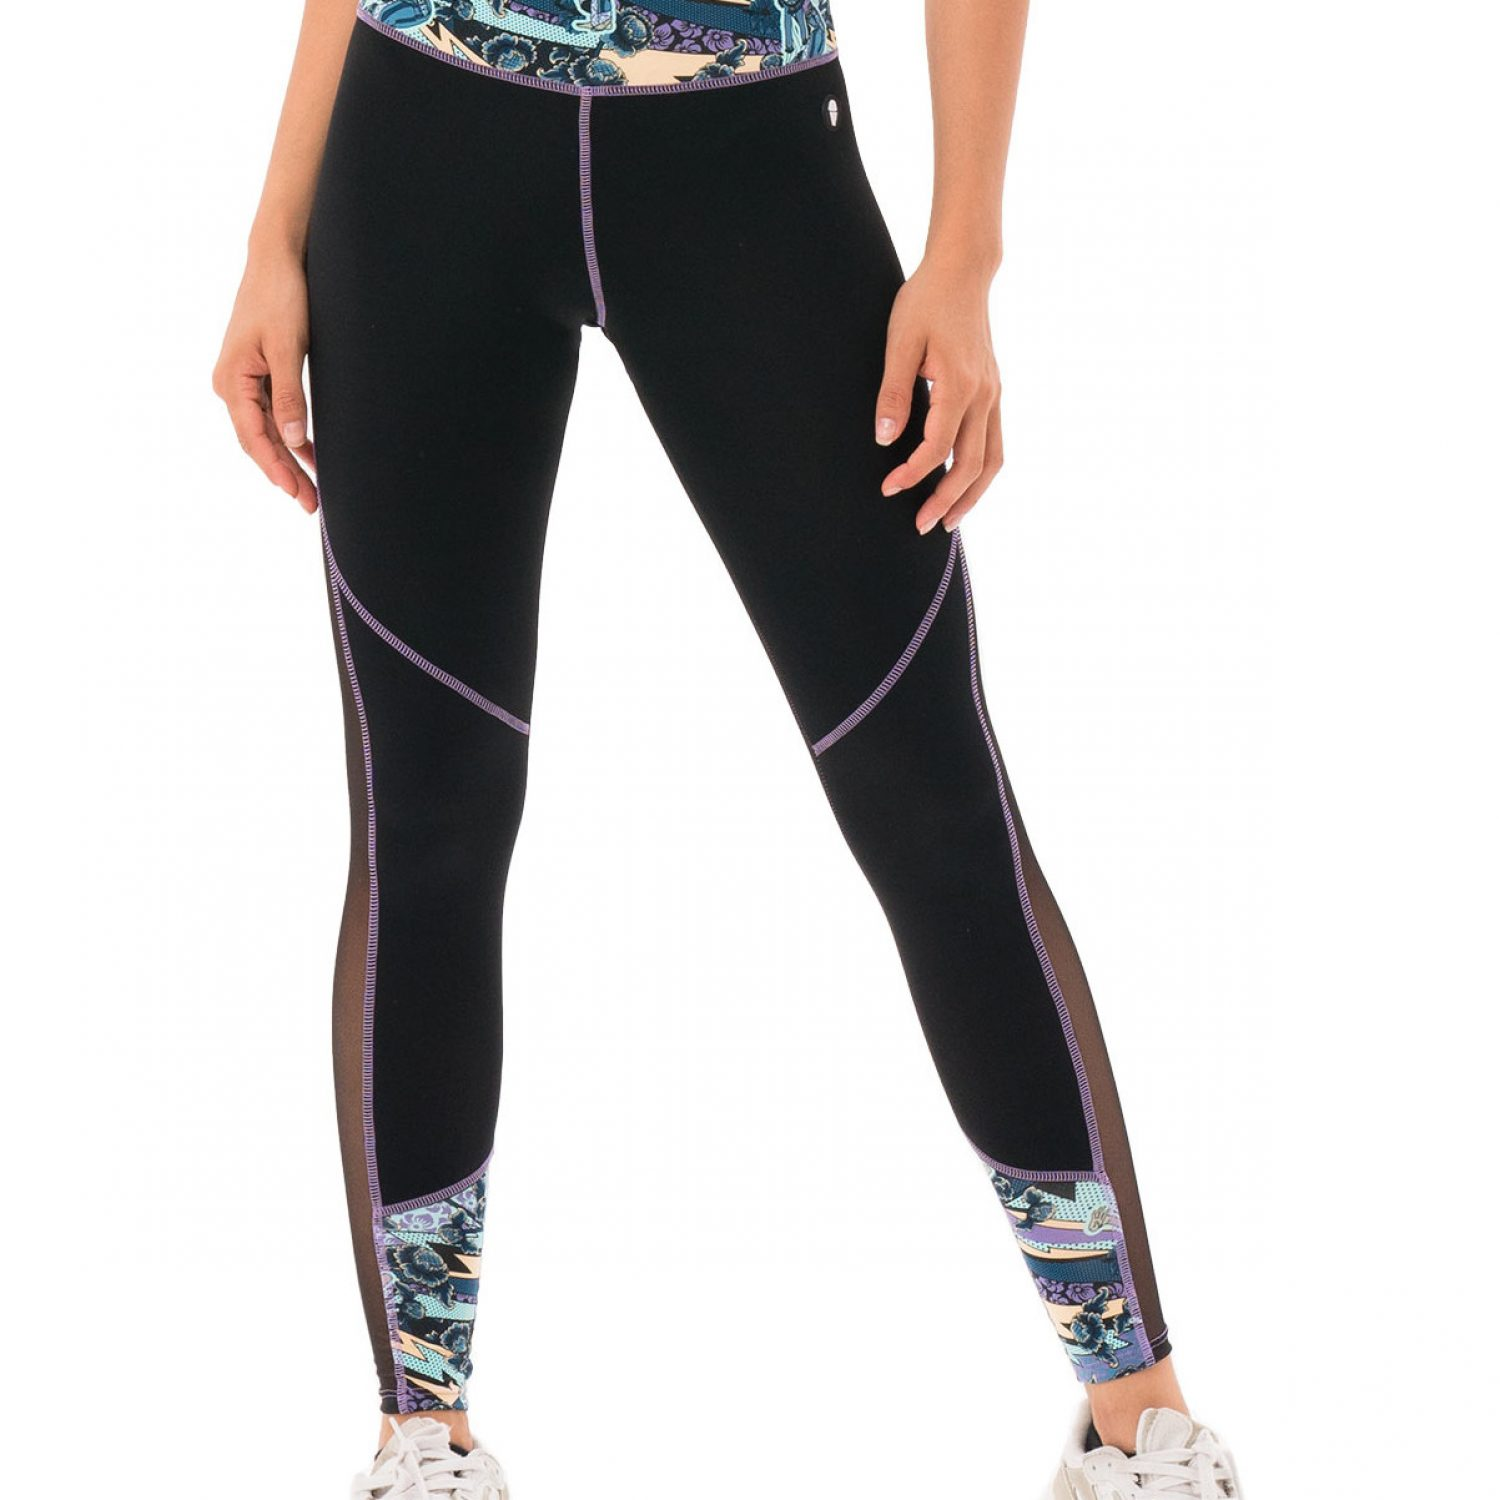 OLKBET-BK-01_Sport_Yoga_Fitness_Leggings_Way back to you